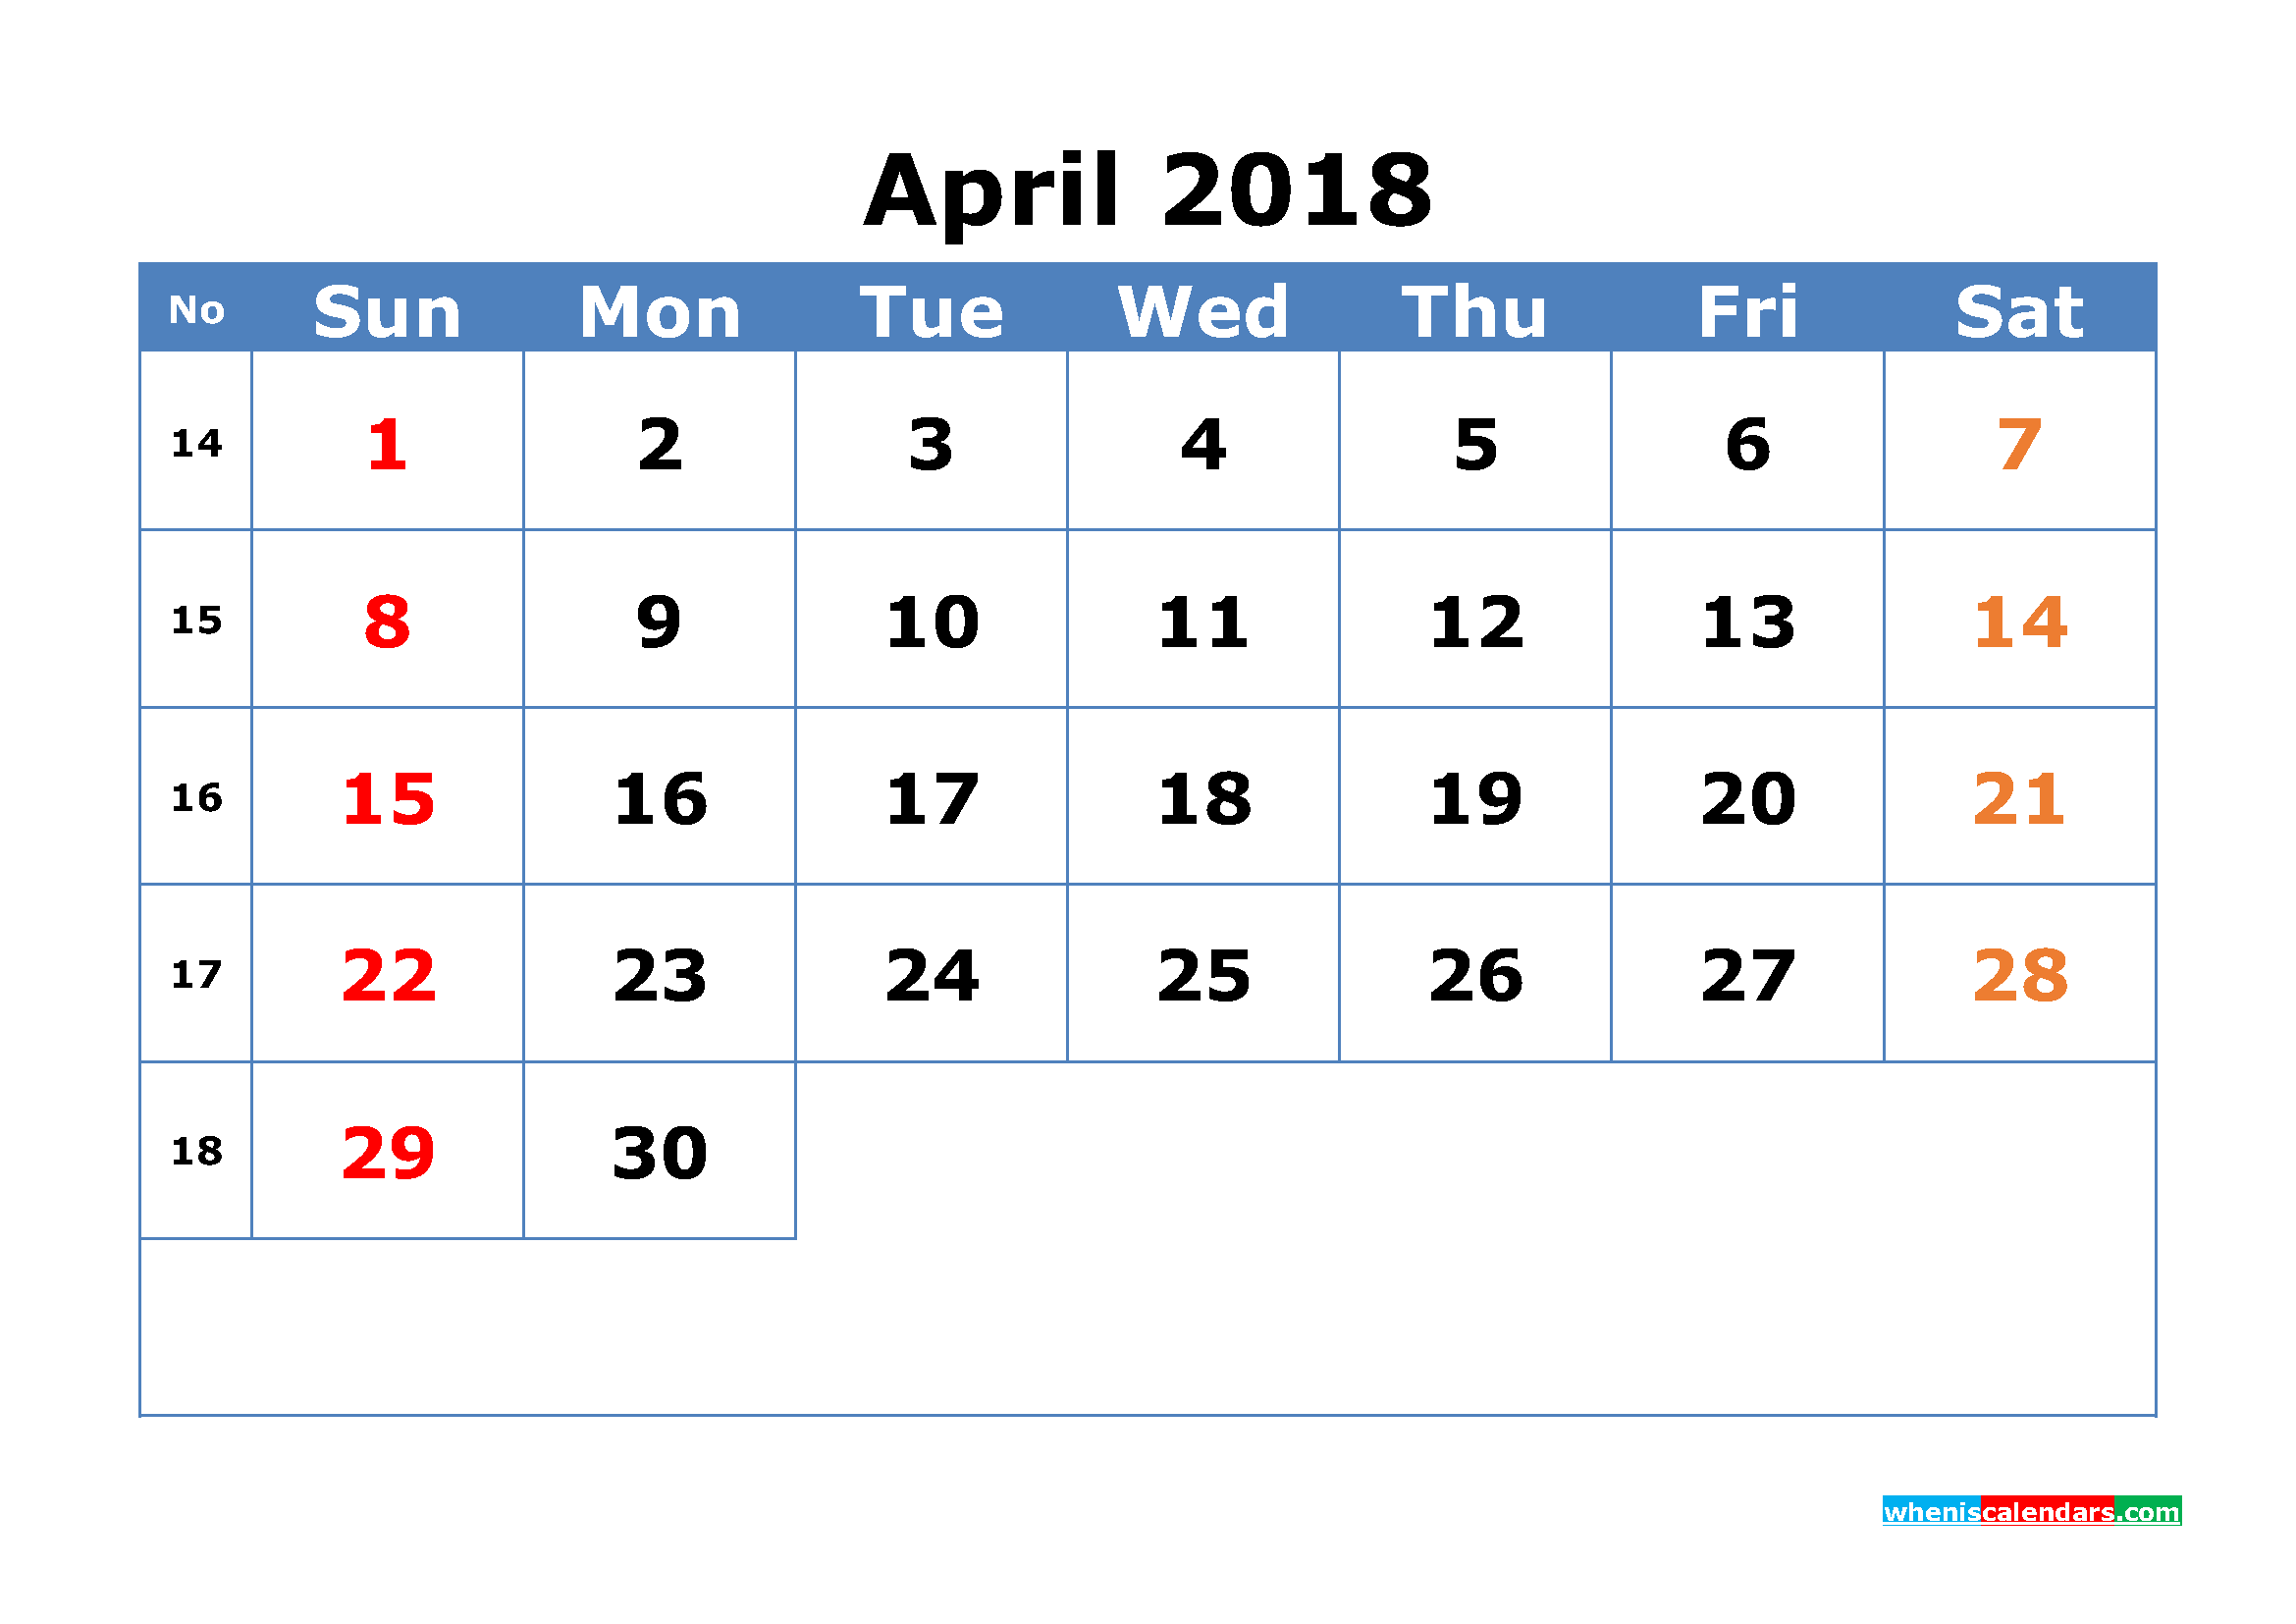 Printable Calendar April 2018 with Week Numbers Pdf, Image